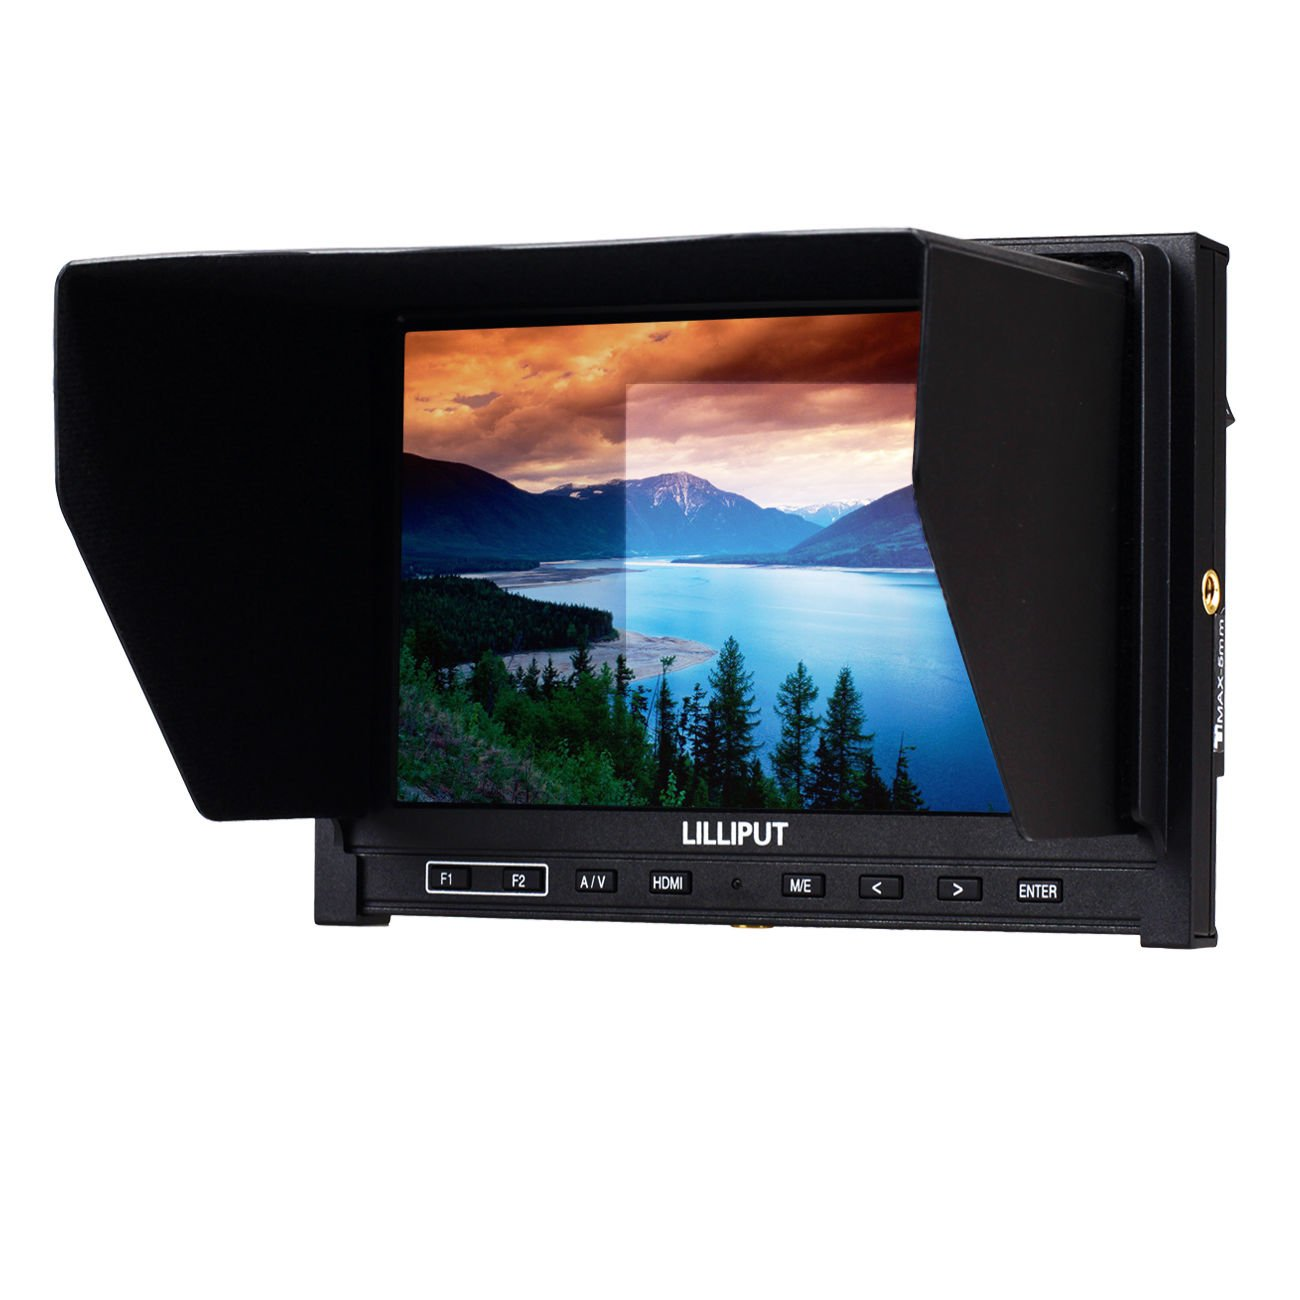 Zhigao High Resolution Lilliput 339 7 IPS Camera Top Monitor HDMI Input AV in Out Put by Zhigao (Image #1)